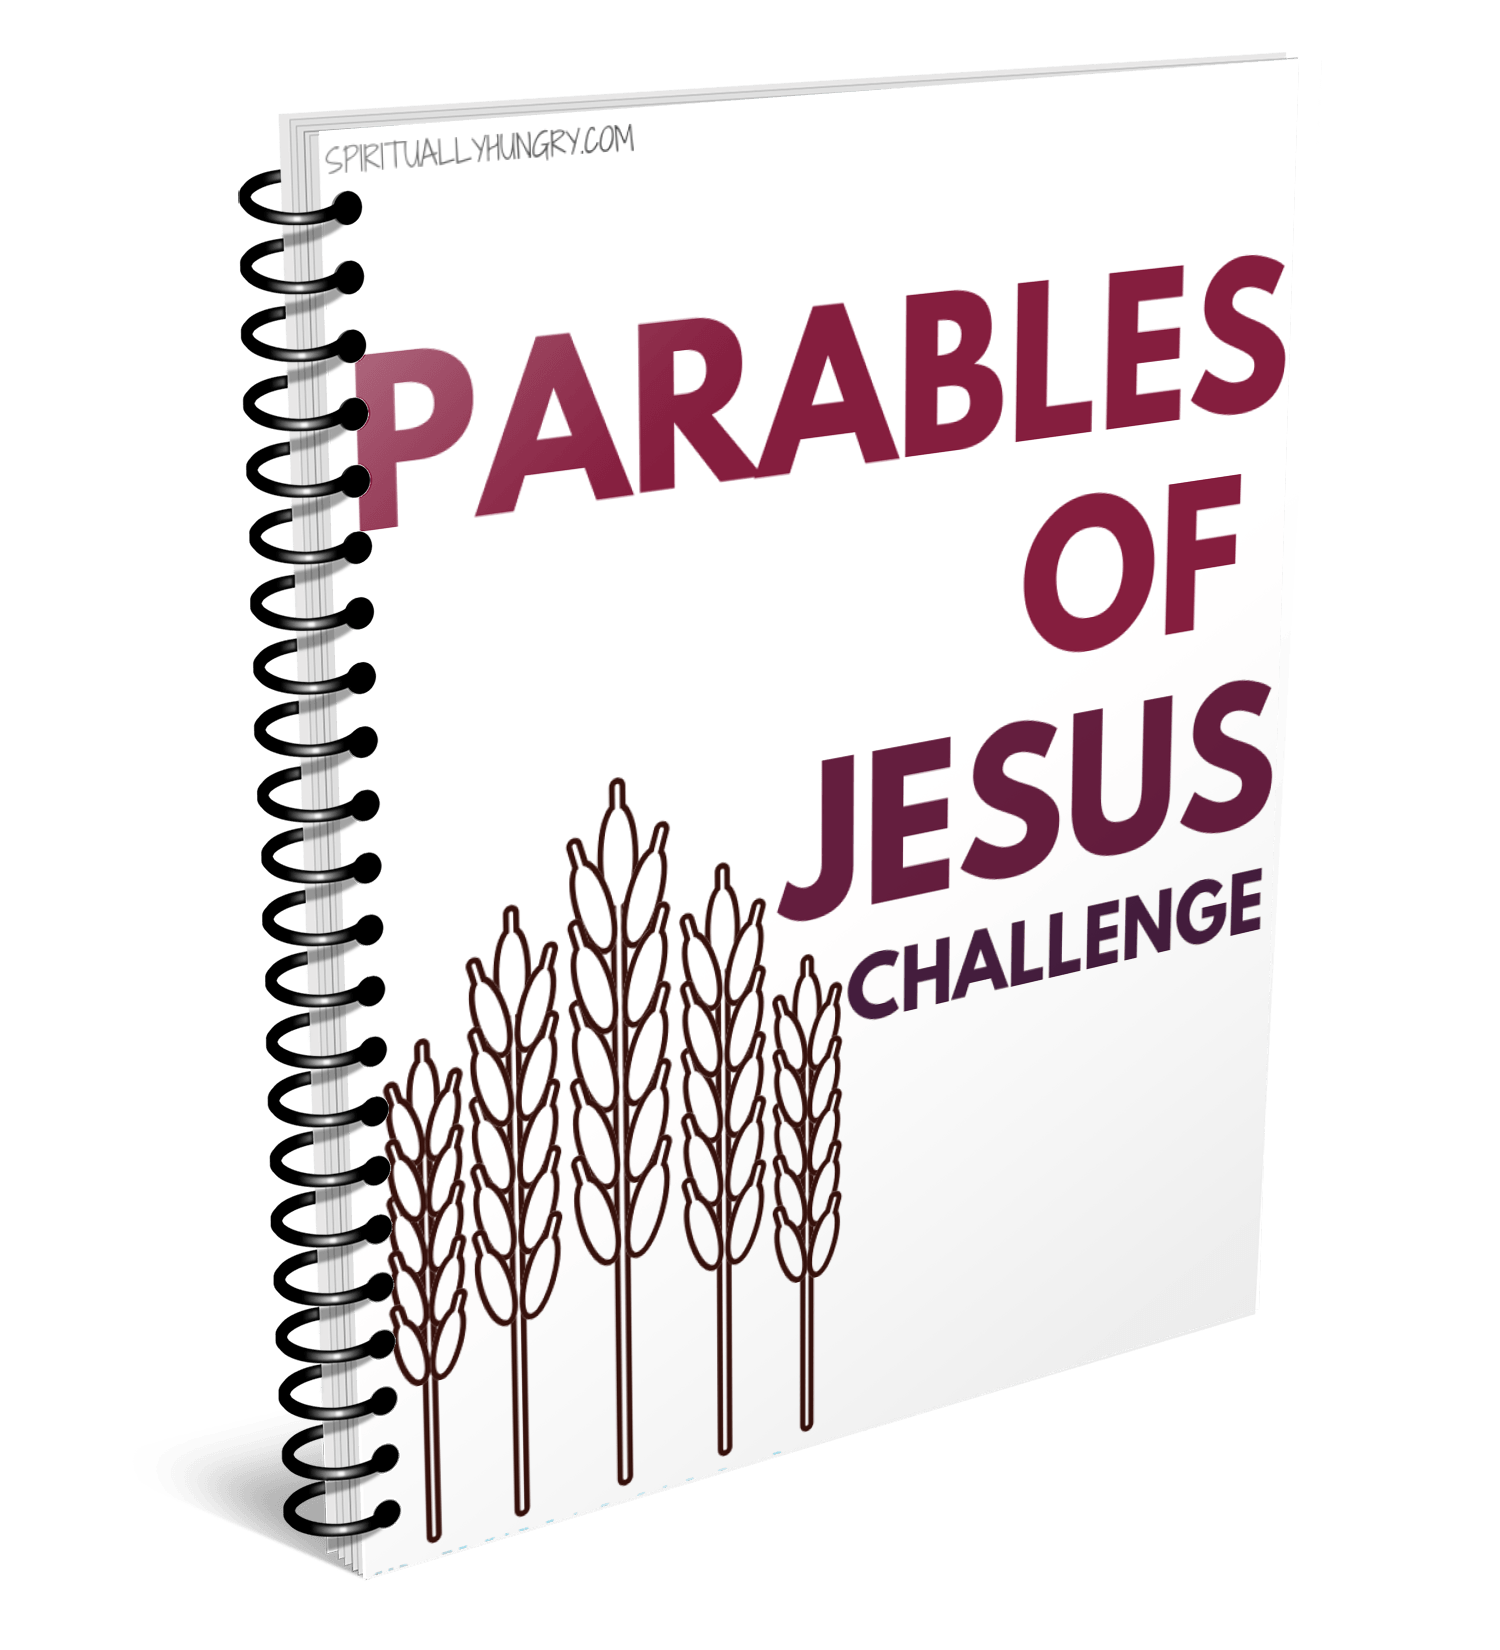 Parables Of Jesus Challenge With Images Parables Of Jesus Parables Bible Lessons